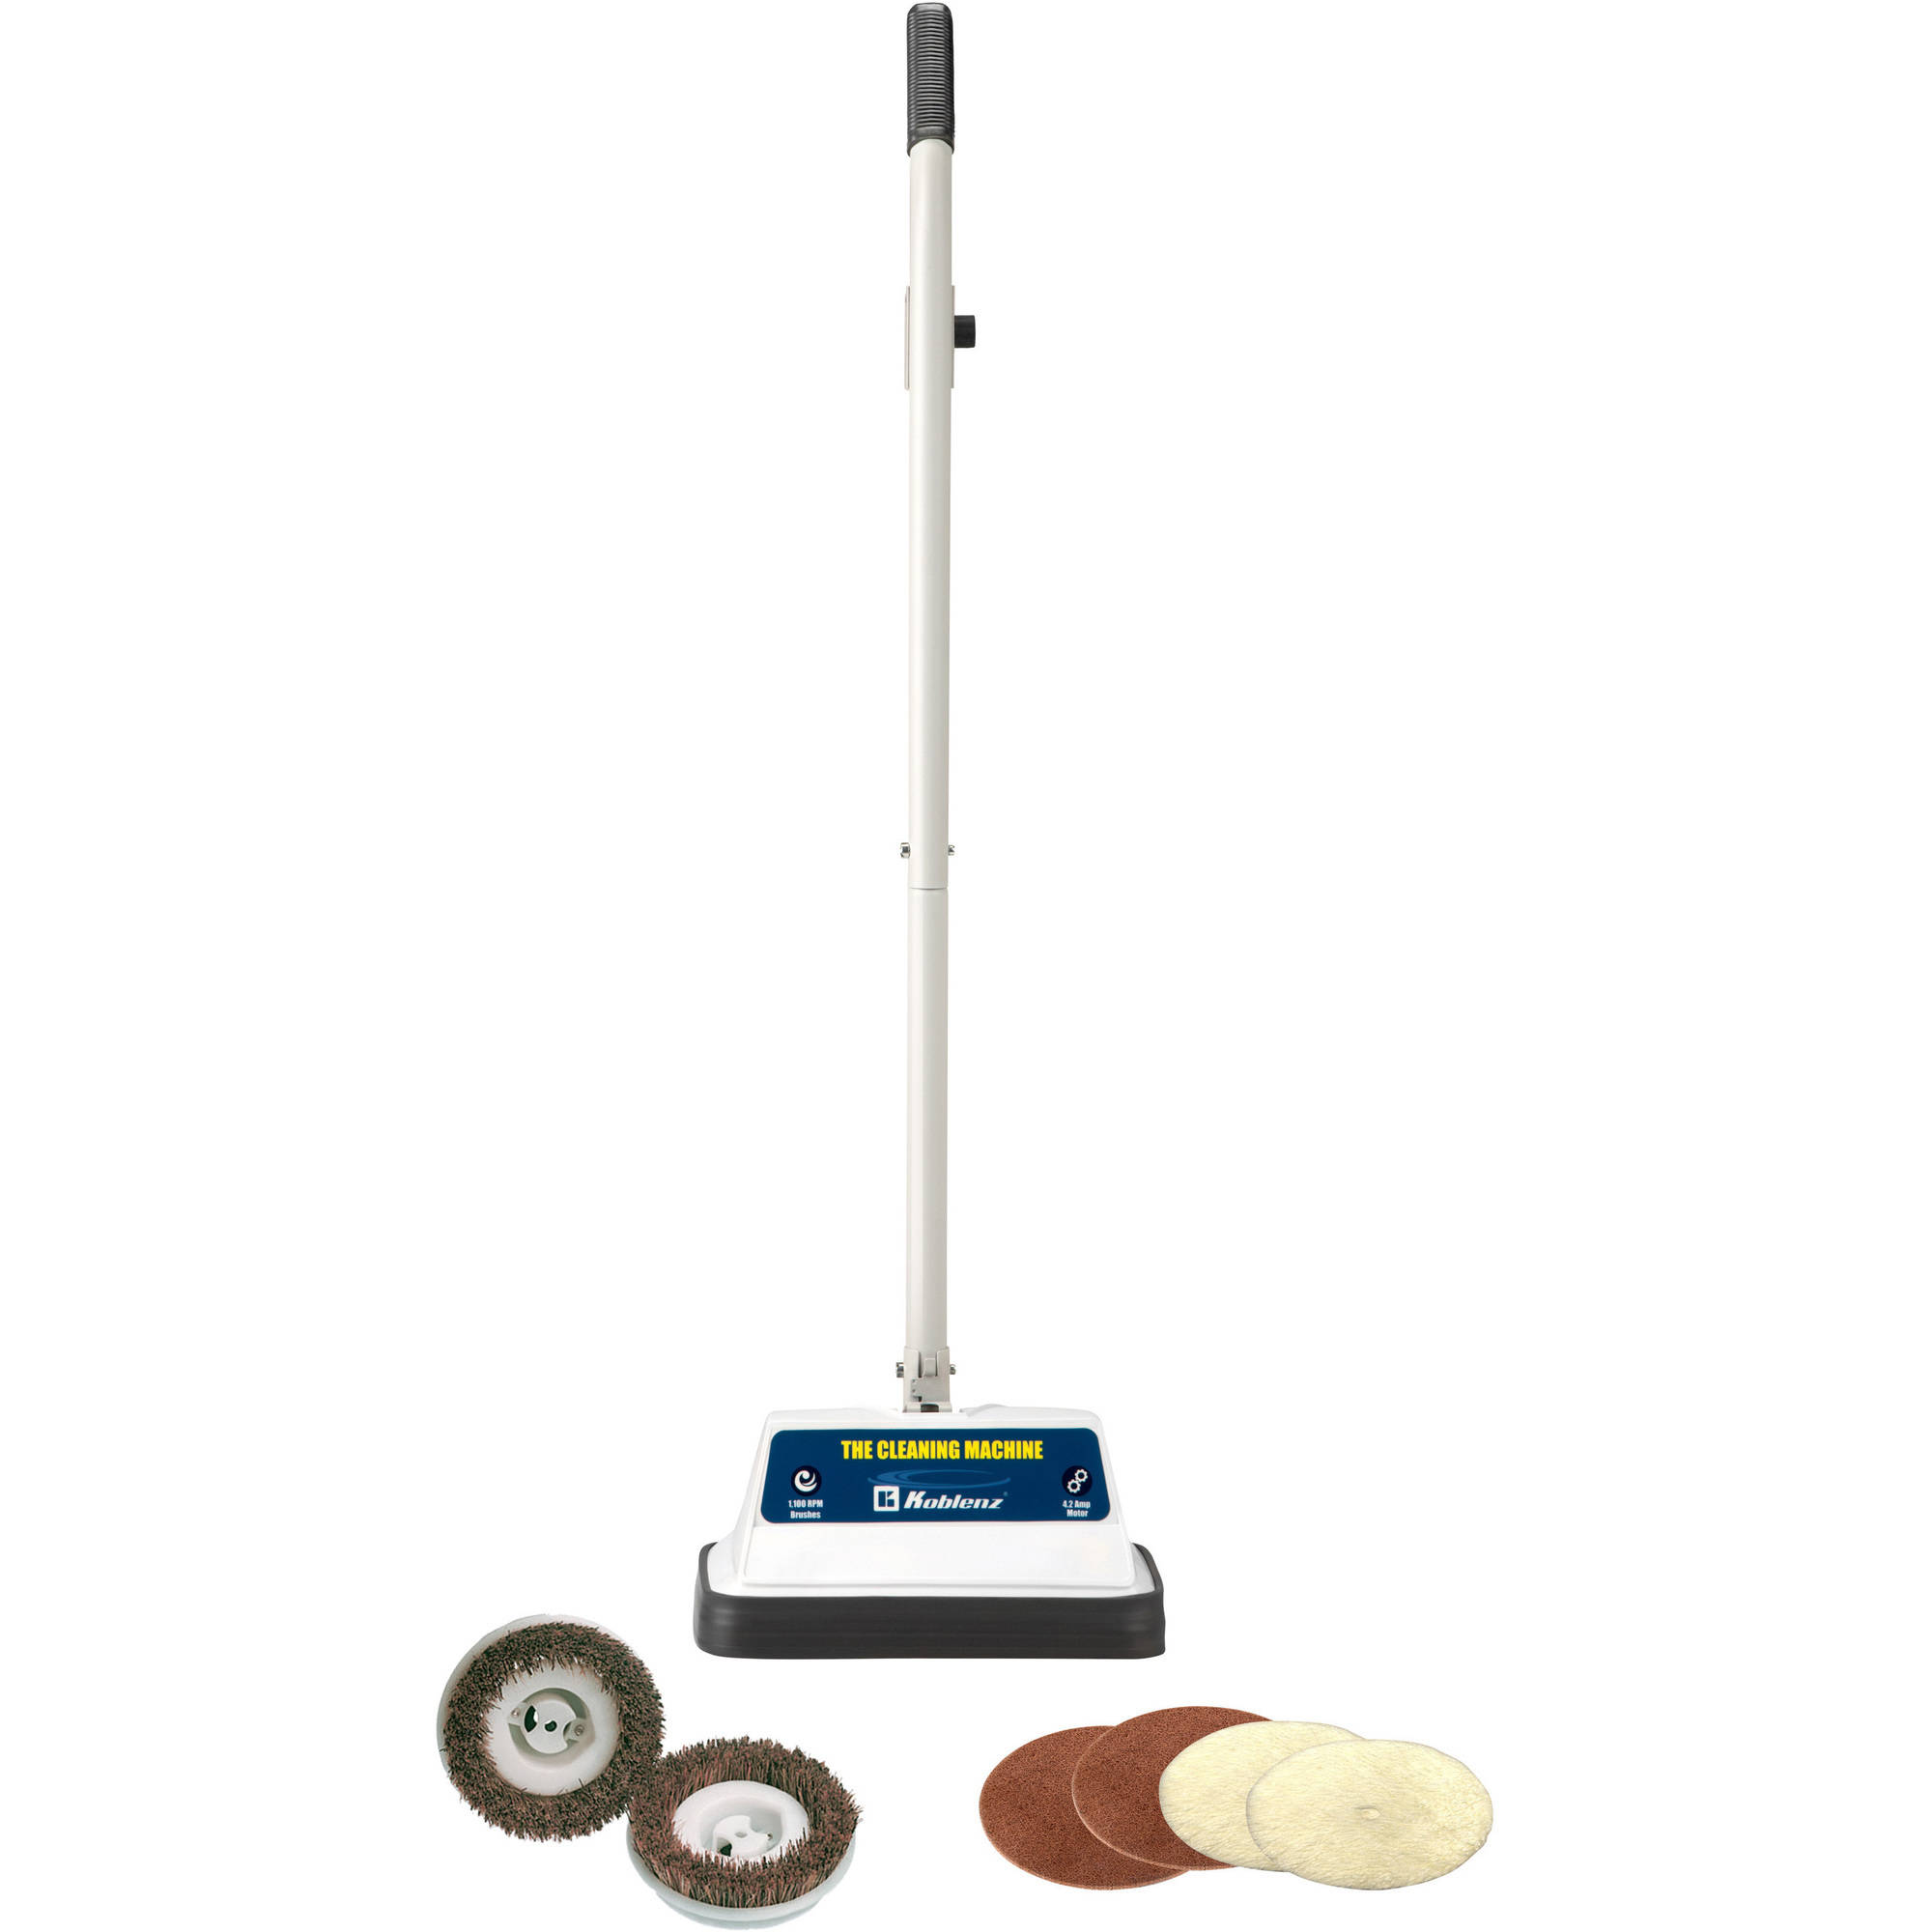 semca equipment cleaning floor machines